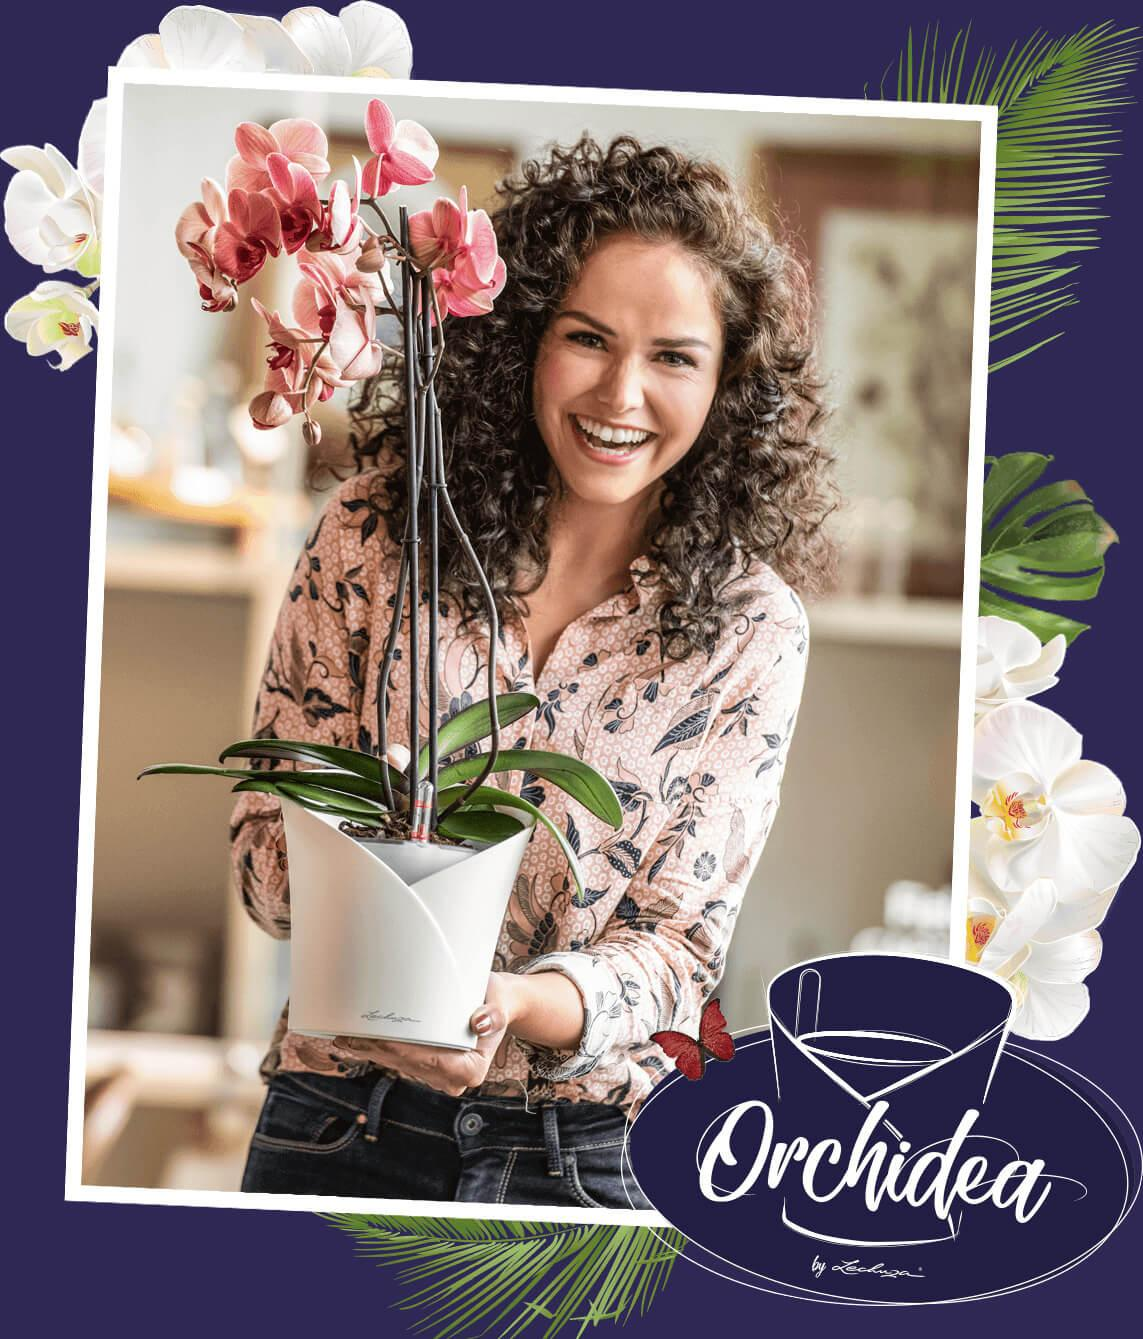 ORCHIDEA The all-in-one pot for orchids